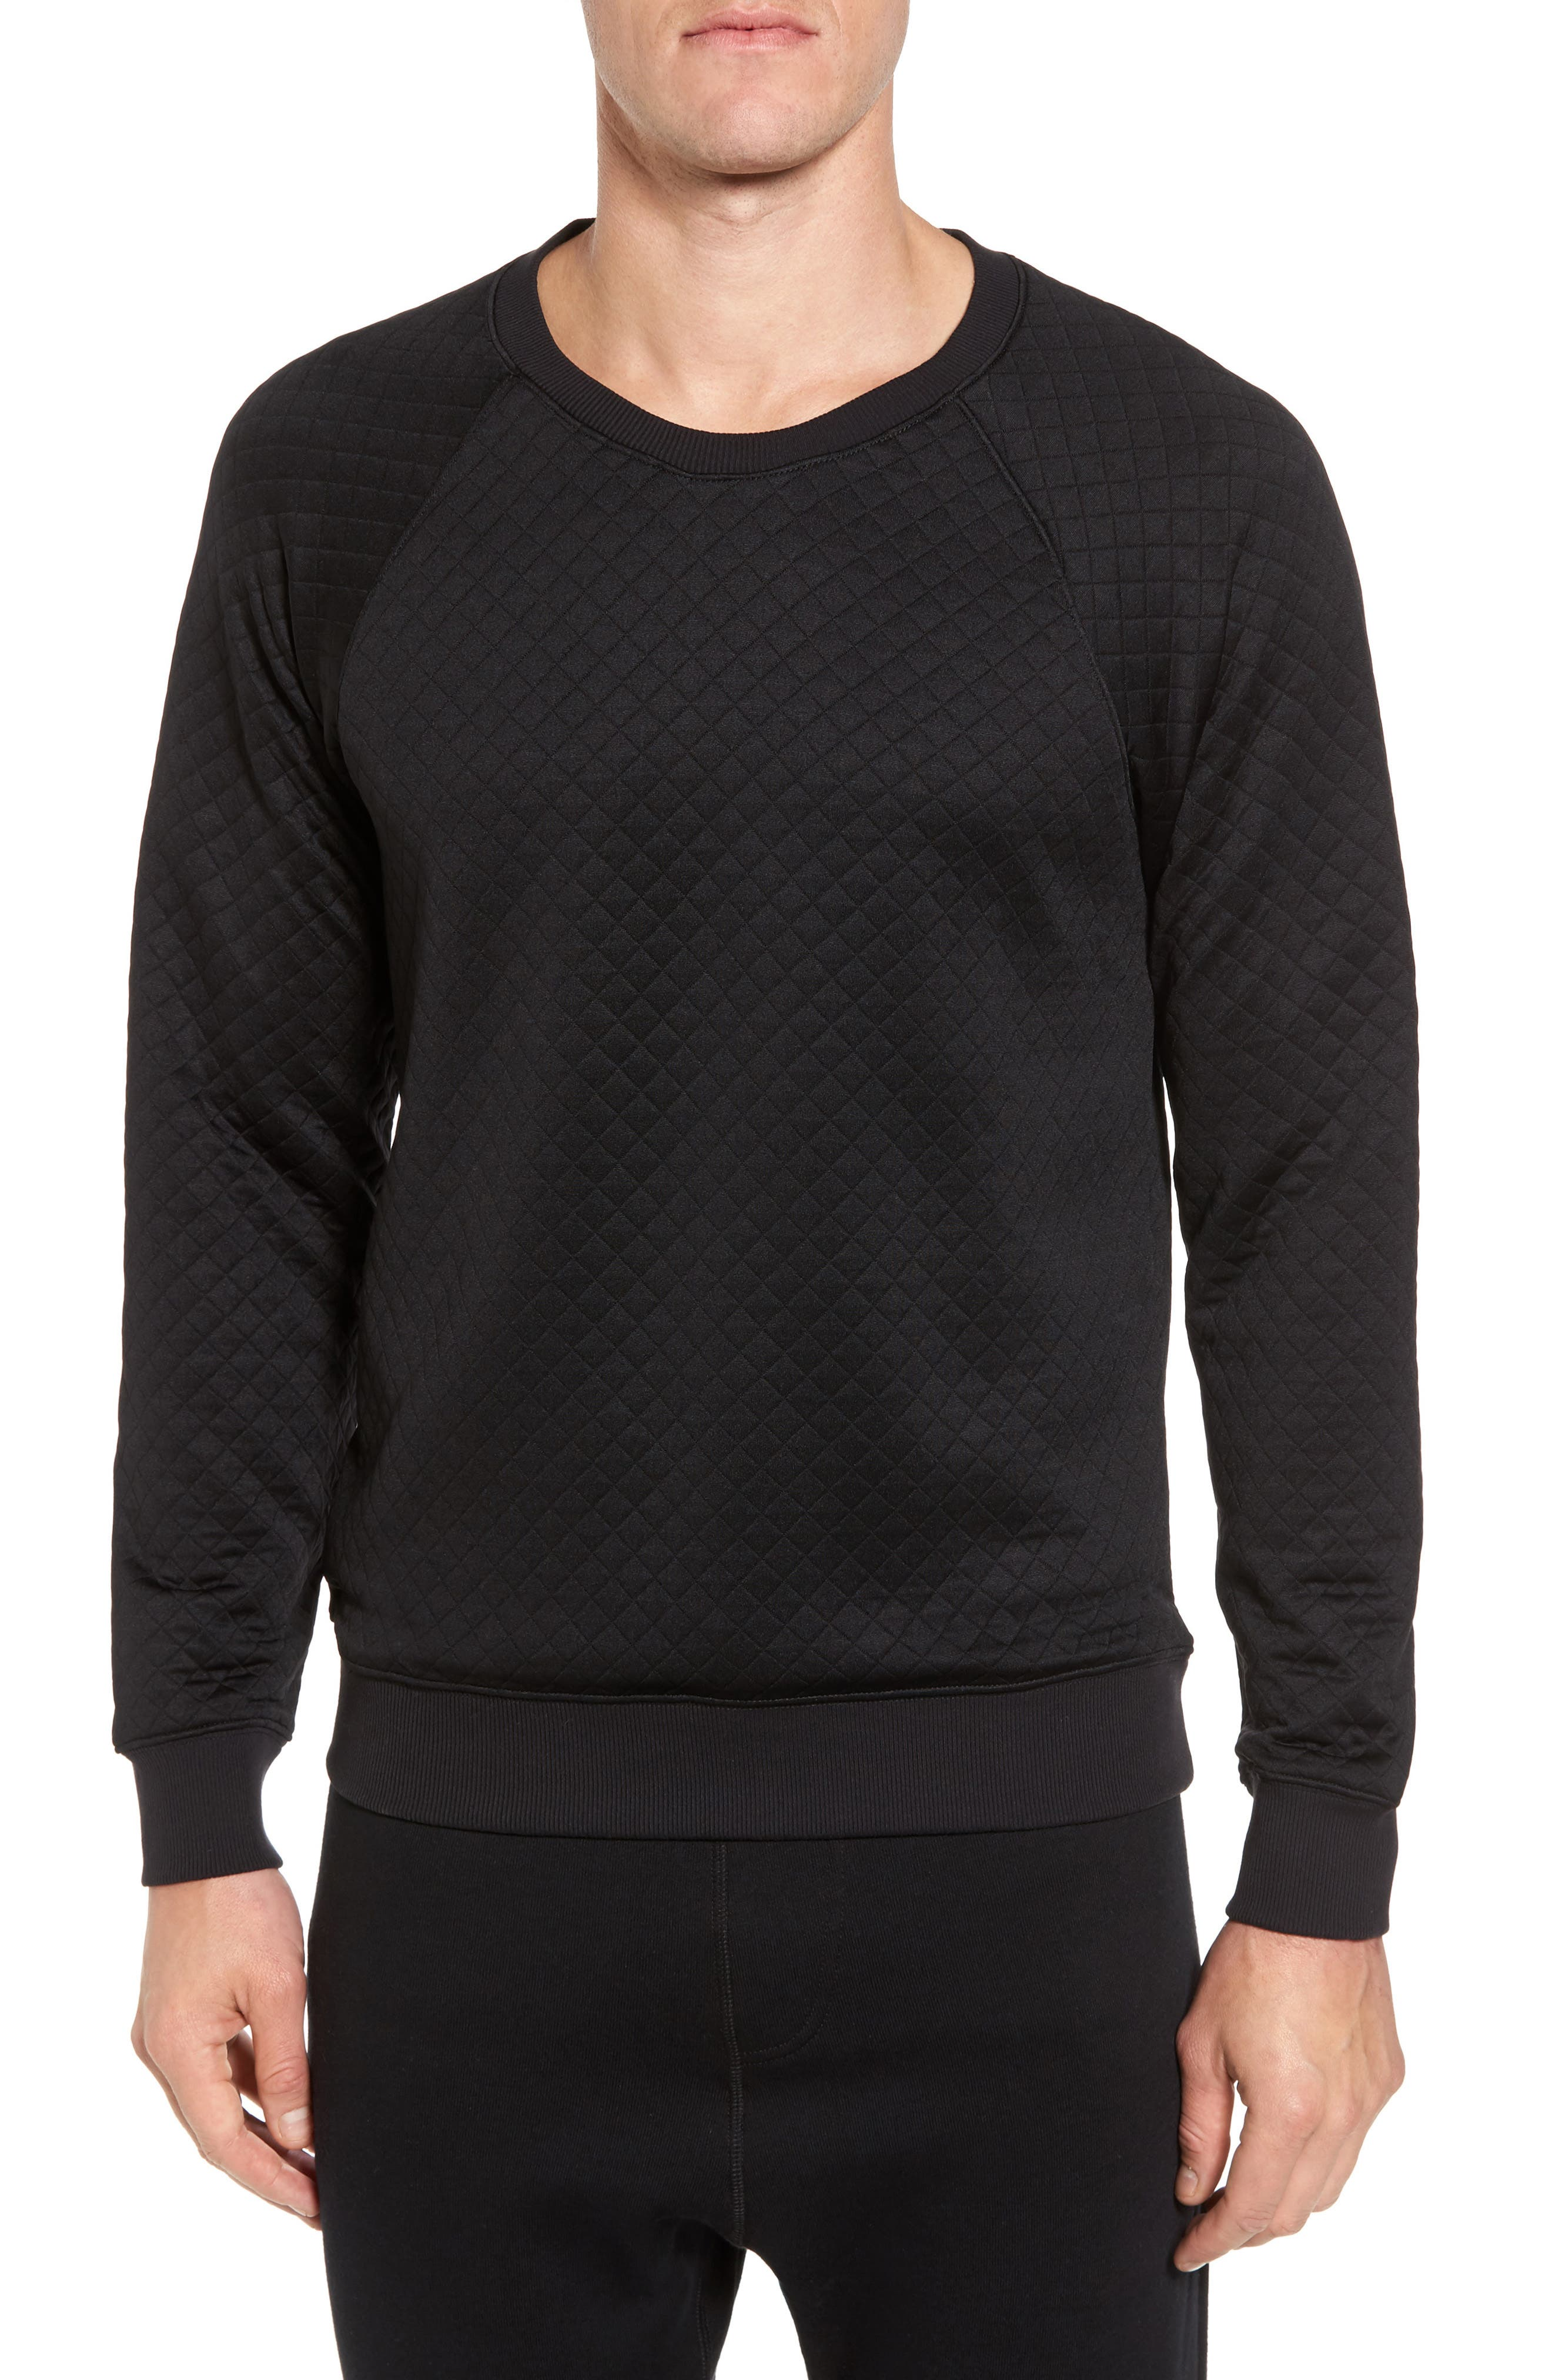 Yama Relaxed Slim Fit Quilted Sweatshirt,                         Main,                         color, Black